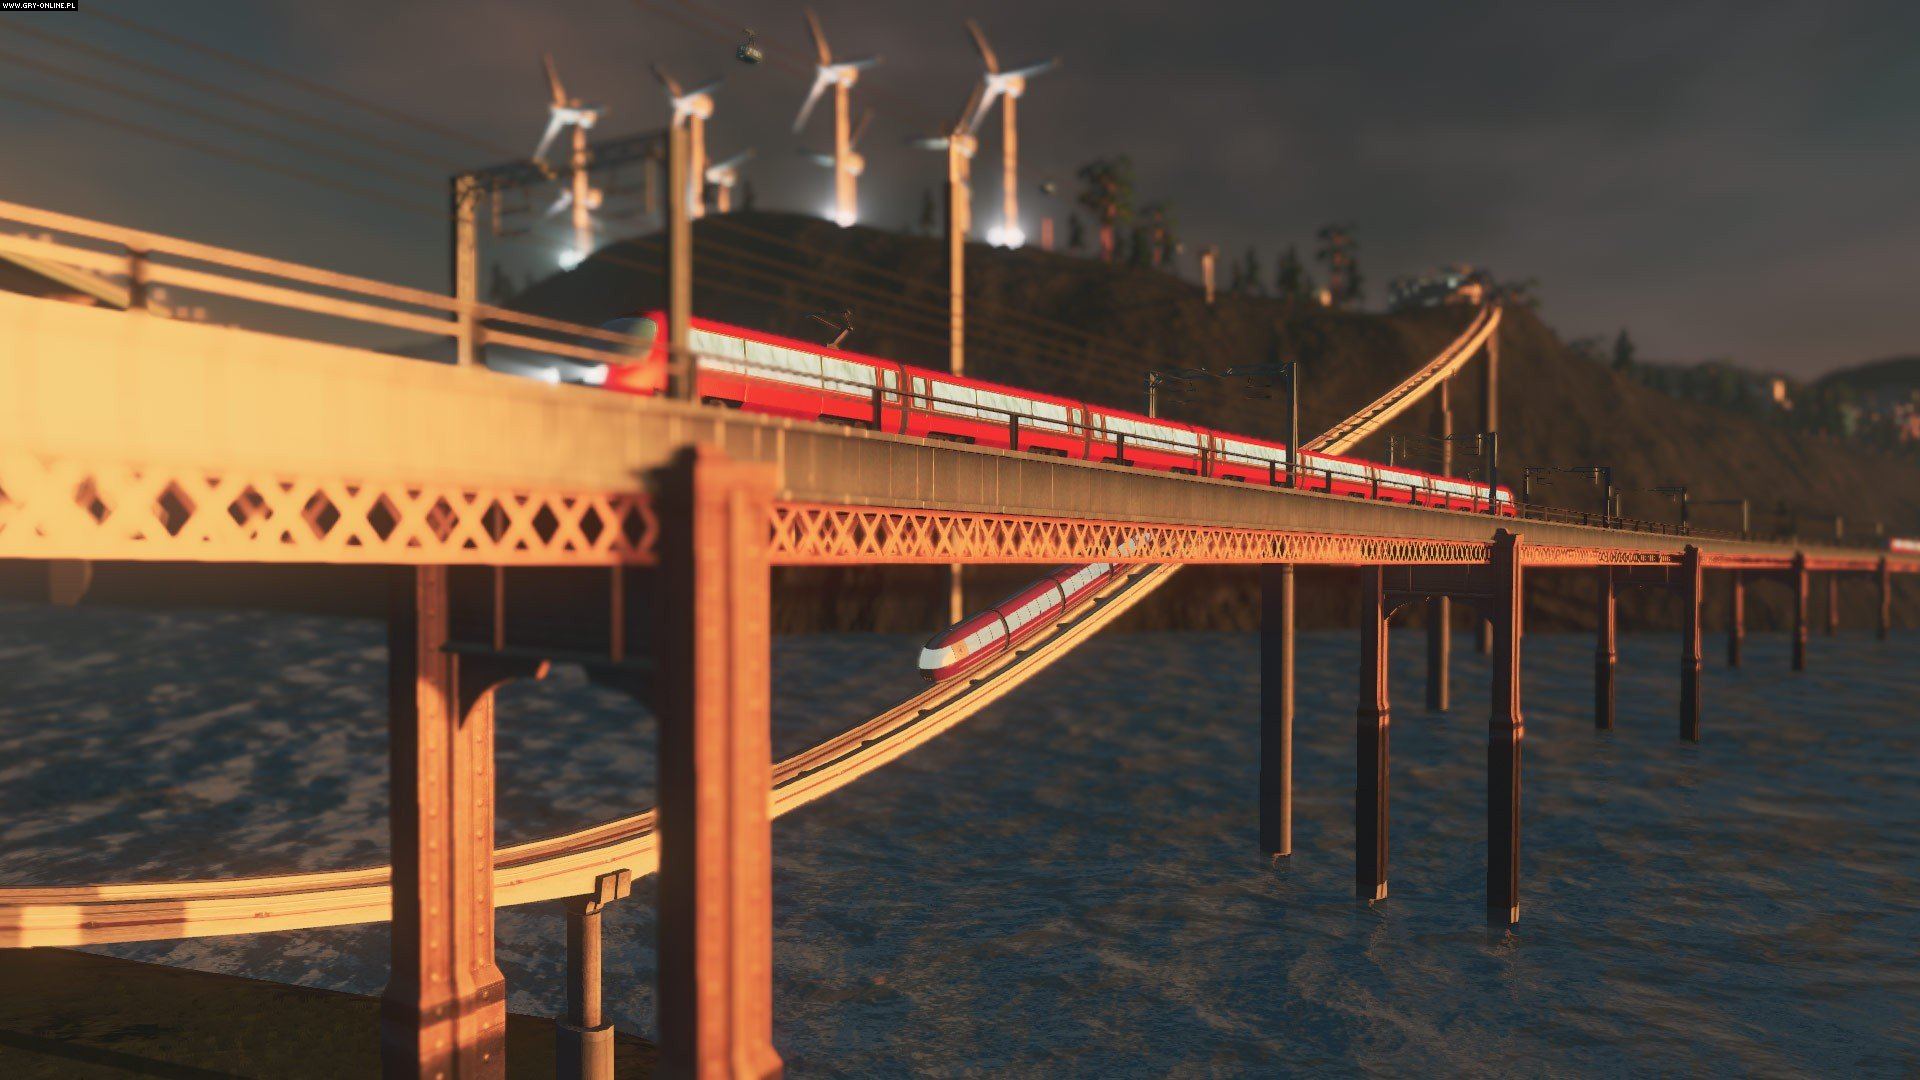 Cities: Skylines - Mass Transit PC Games Image 7/11, Colossal Order, Paradox Interactive